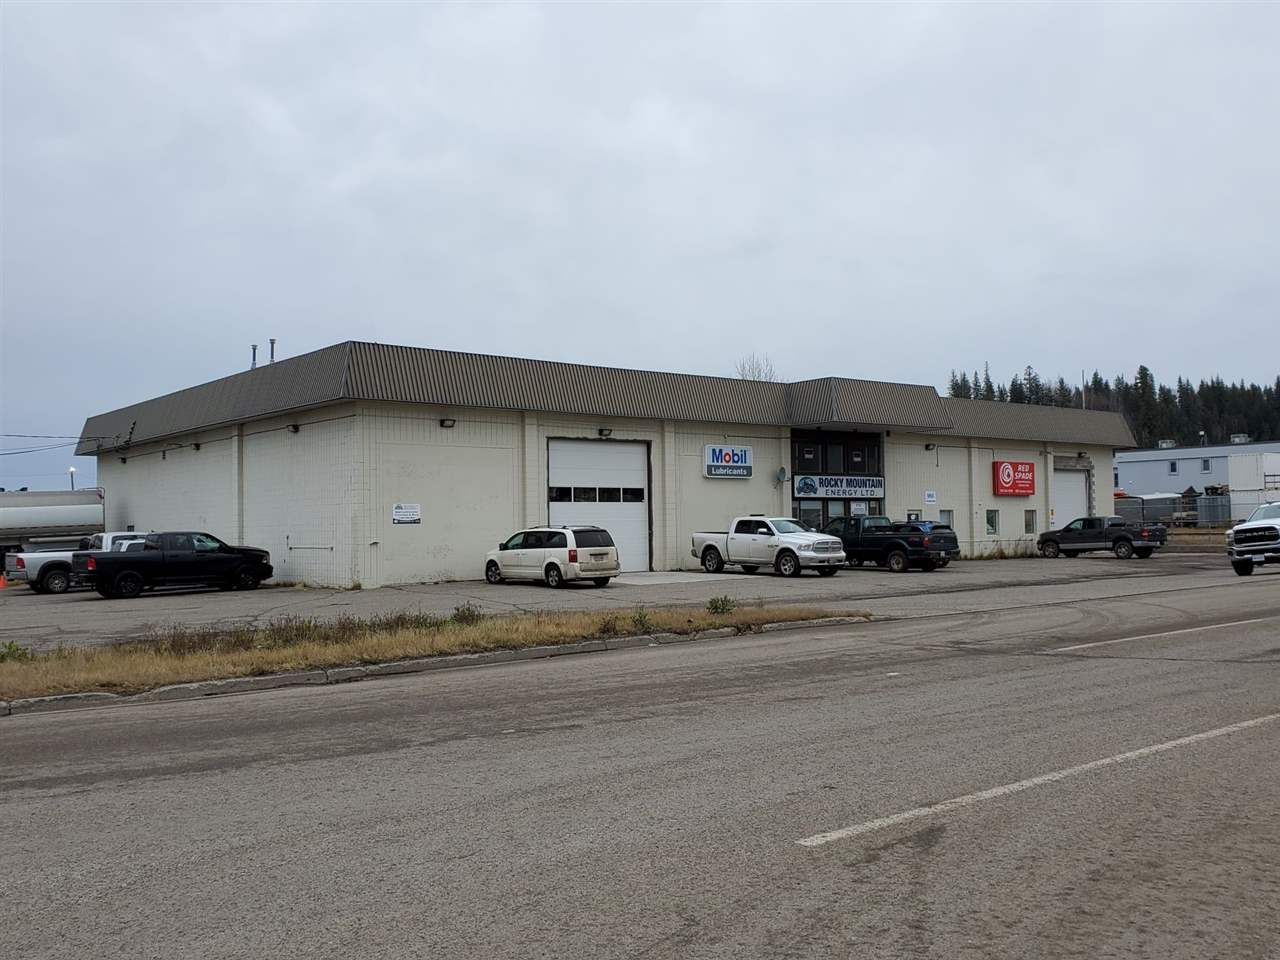 Main Photo: 970 TERMINAL Boulevard in BCR Industrial Site: BCR Industrial Industrial for sale (PG City South East (Zone 75))  : MLS®# C8036573